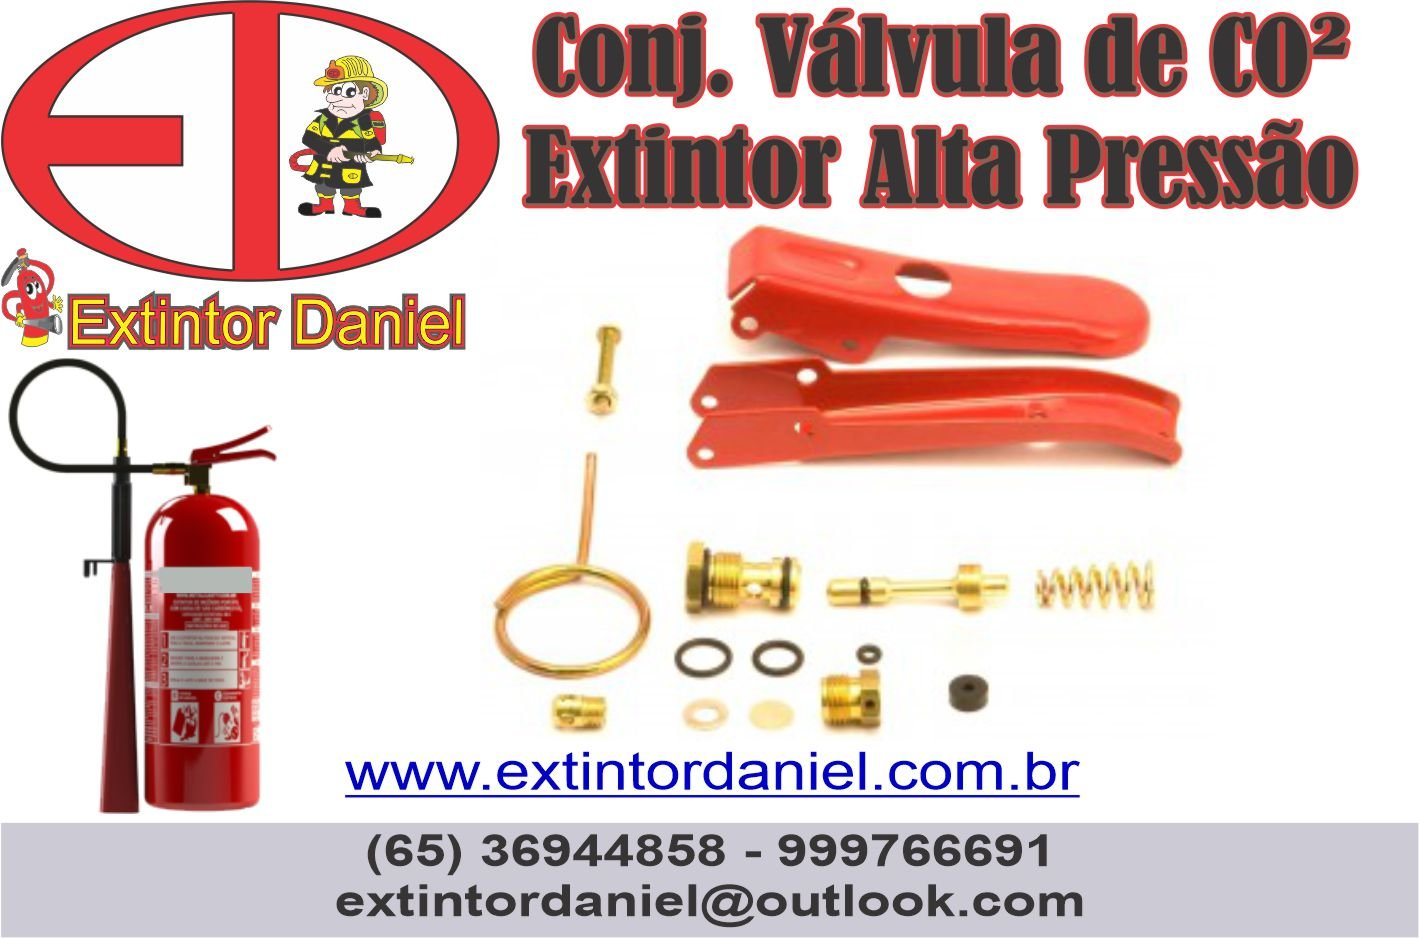 https://0201.nccdn.net/4_2/000/000/087/44f/conjunto-valvula-co2.jpg